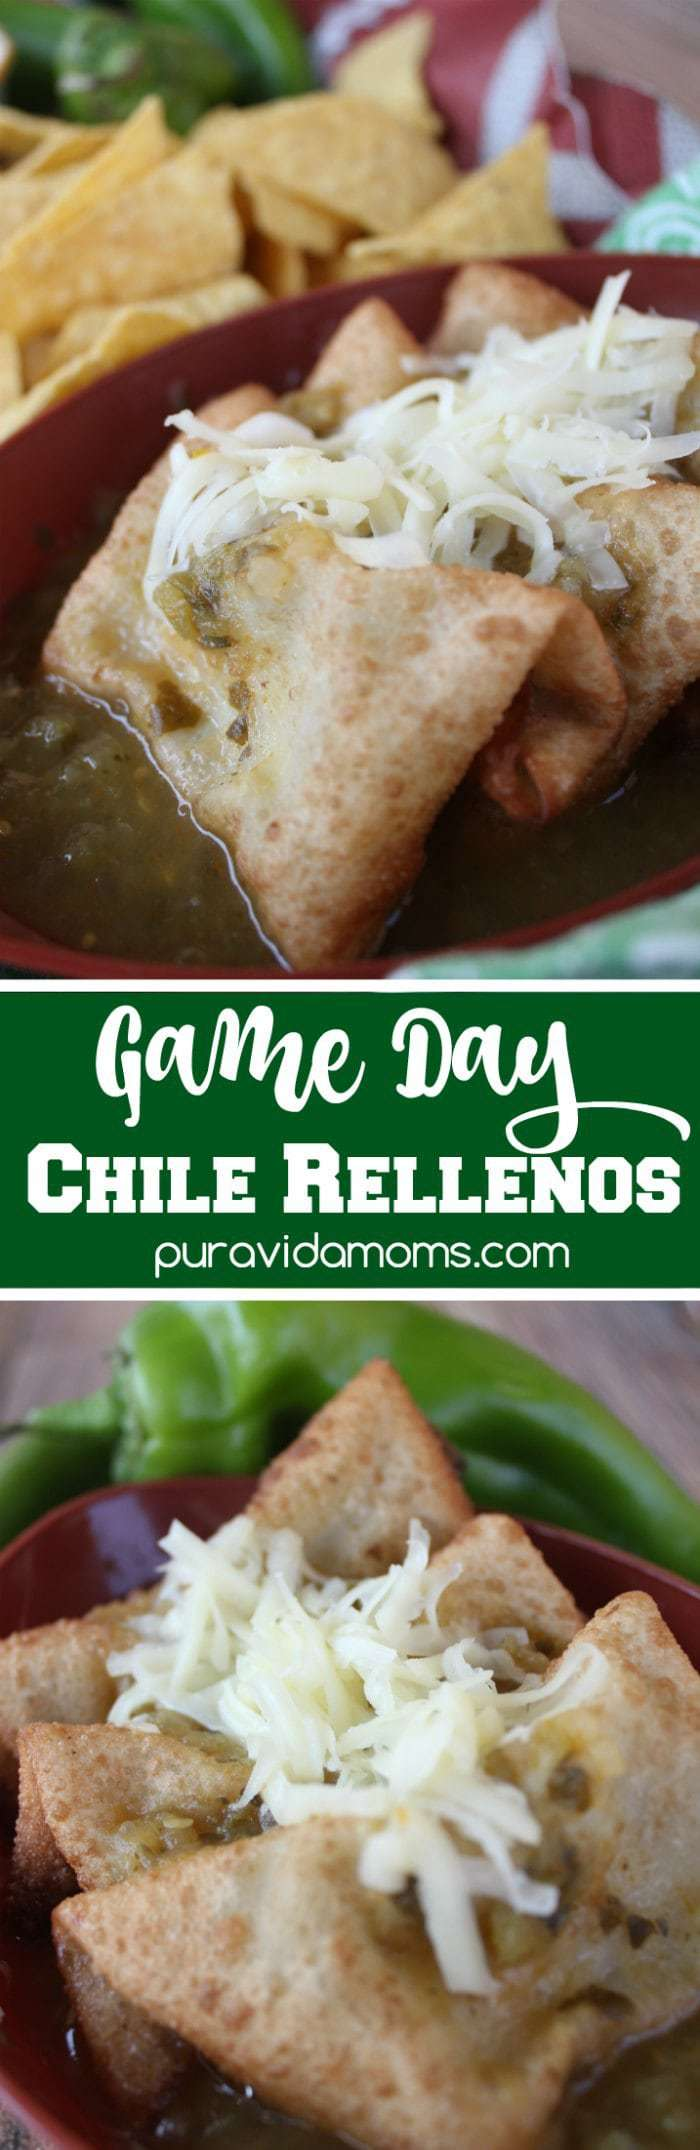 Game Day Vegetarian Chile Rellenos Recipe